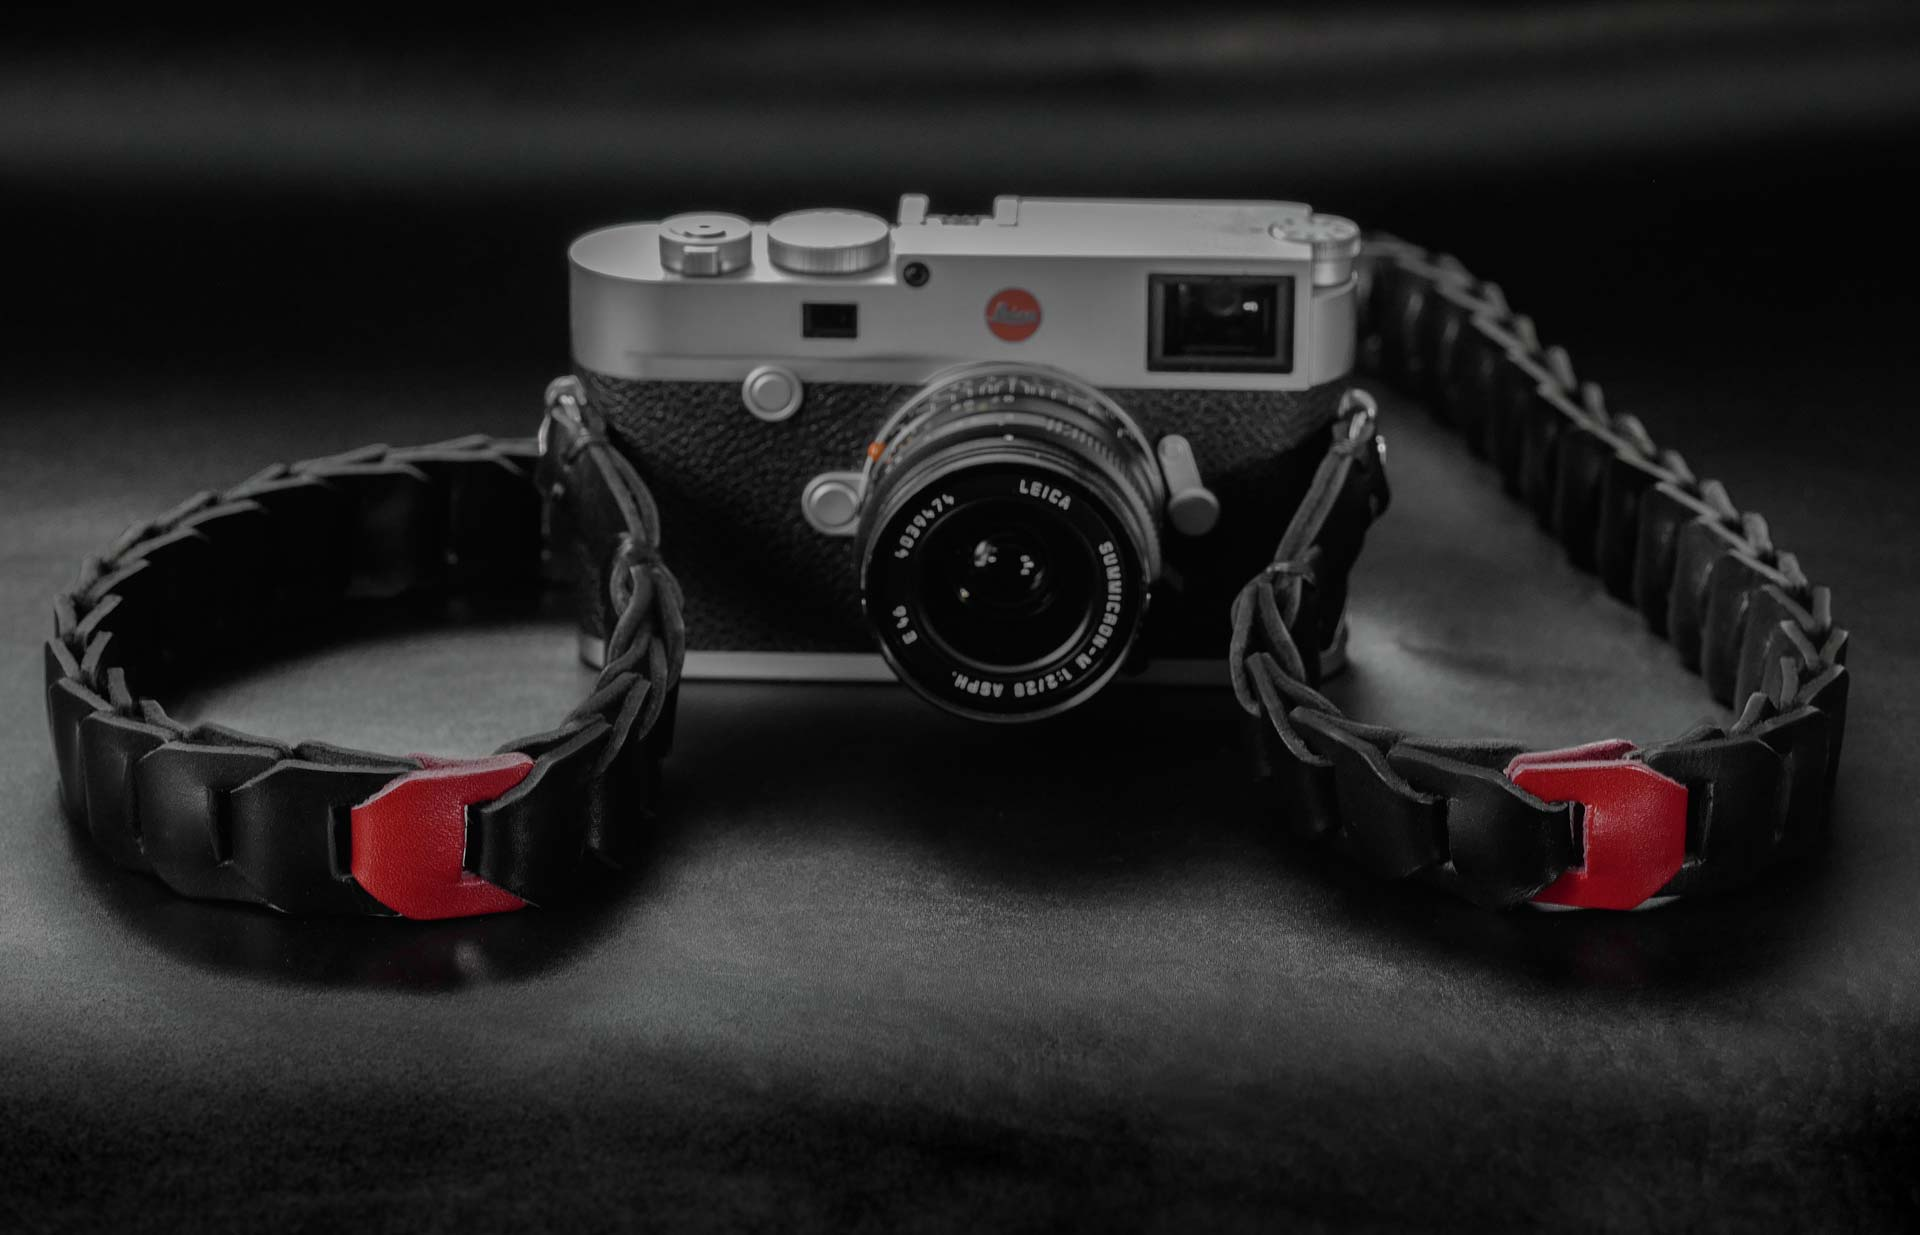 leica m strap, leather camera strap, handmade leather camera strap, leica camera strap, mirrorless camera strap, handmade camera strap, red camera strap